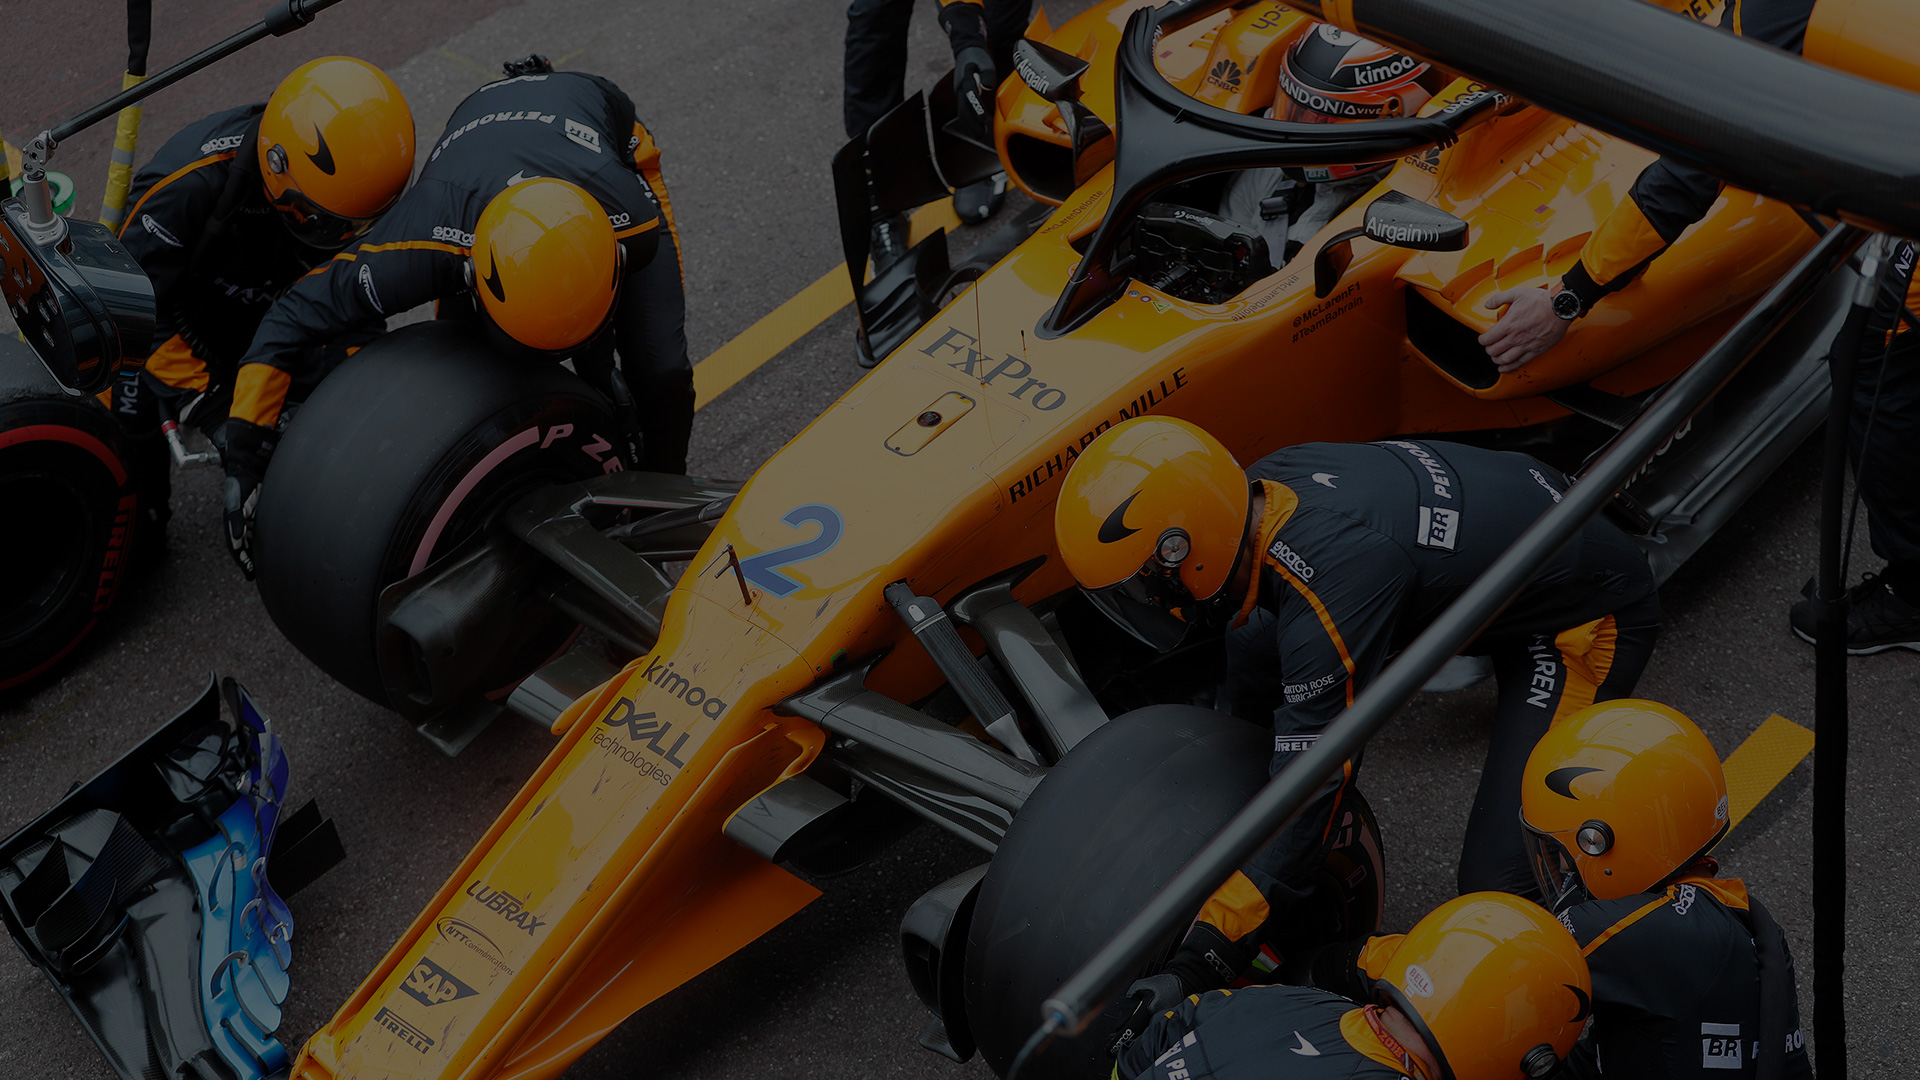 McLaren race car with pit stop team